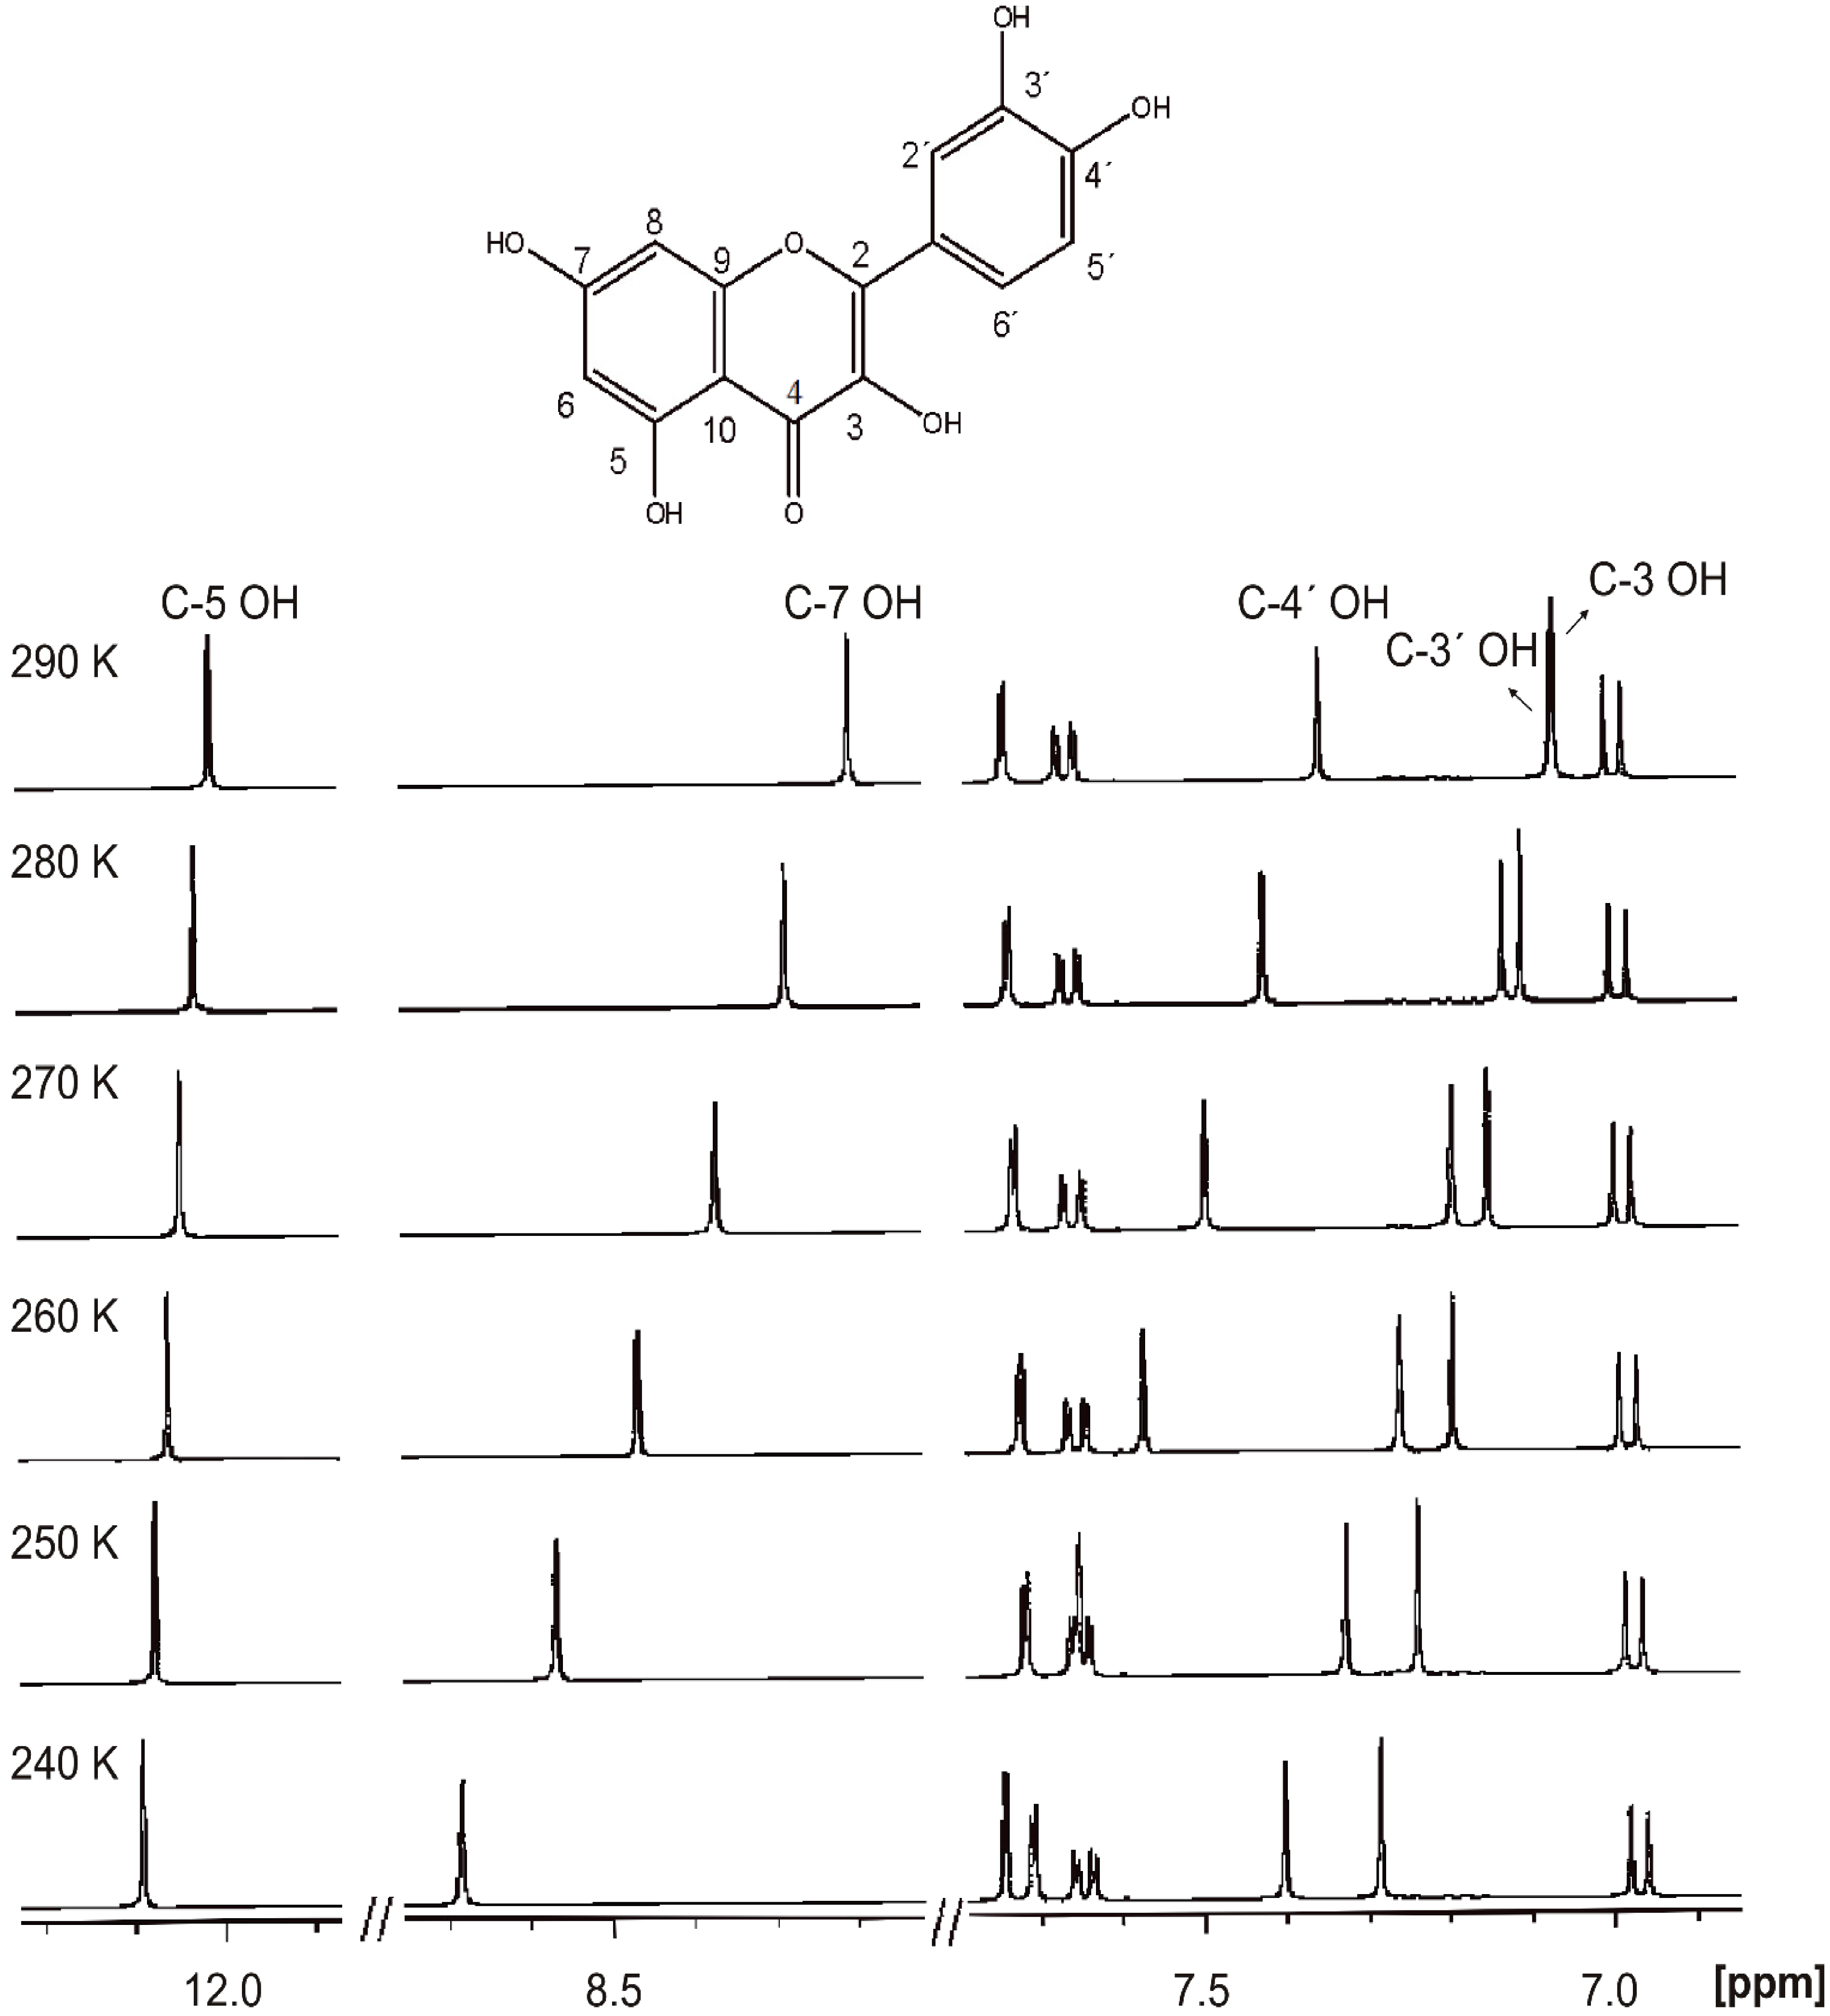 Molecules Free Full Text 1h Nmr As A Structural And Analytical